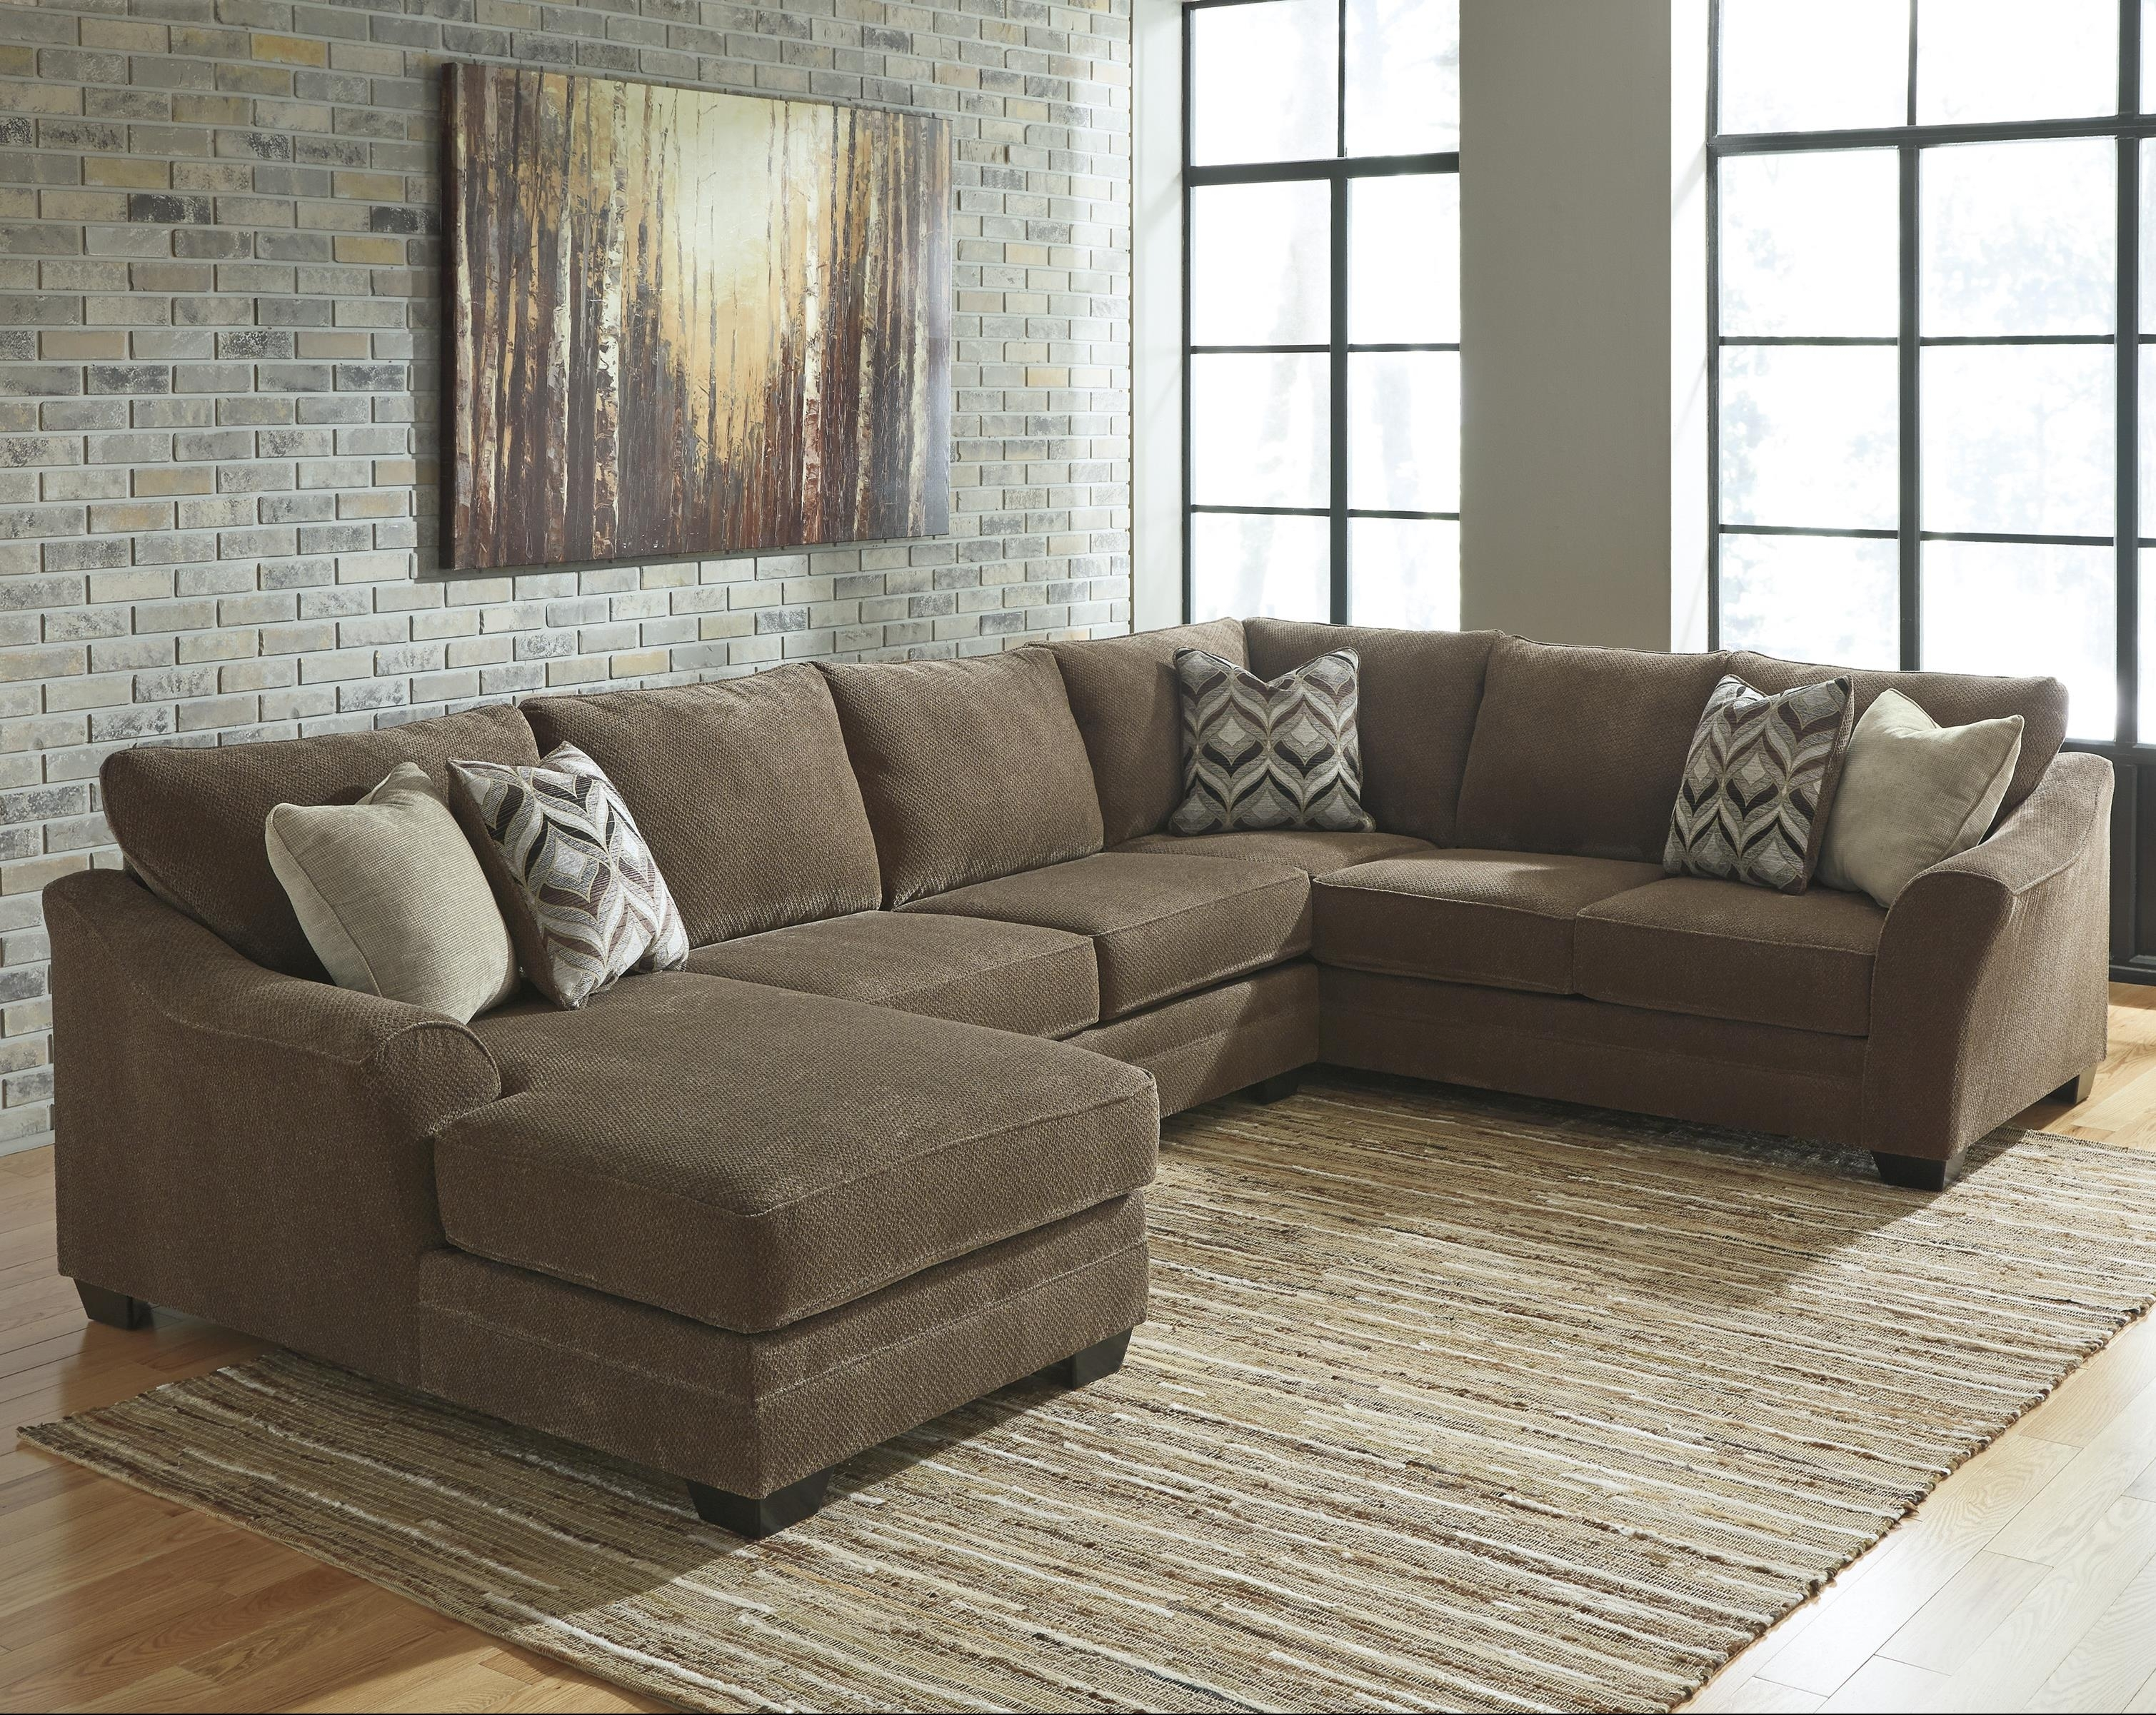 Sectional Sofa : Wrap Around Couch Sectional Sleeper Sofa With Intended For 3 Piece Sectional Sleeper Sofas (View 3 of 10)